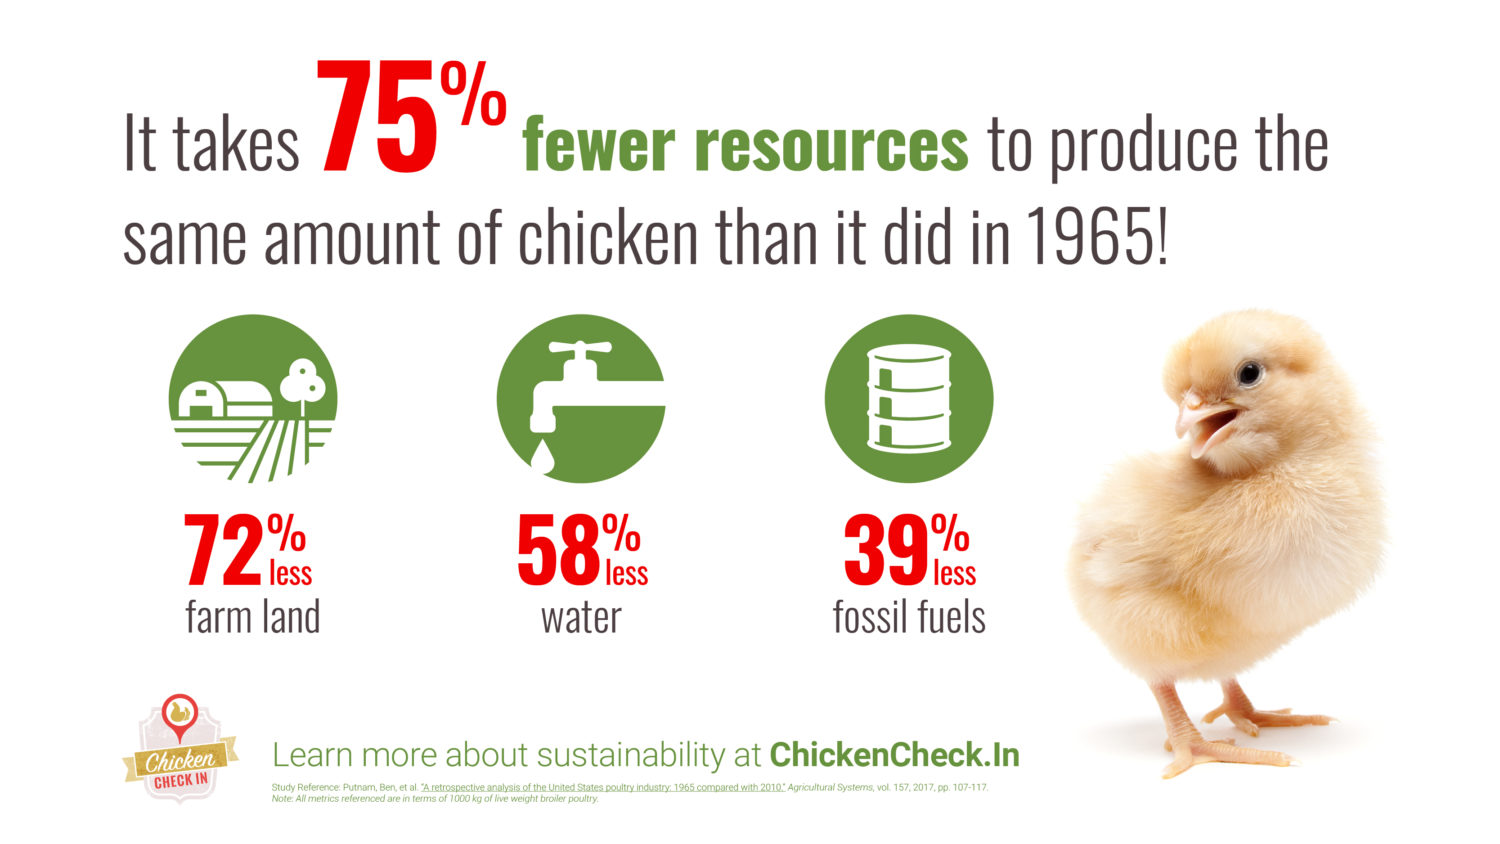 It takes 75% fewer resources to produce the same amount fo chicken than it did in 1965.